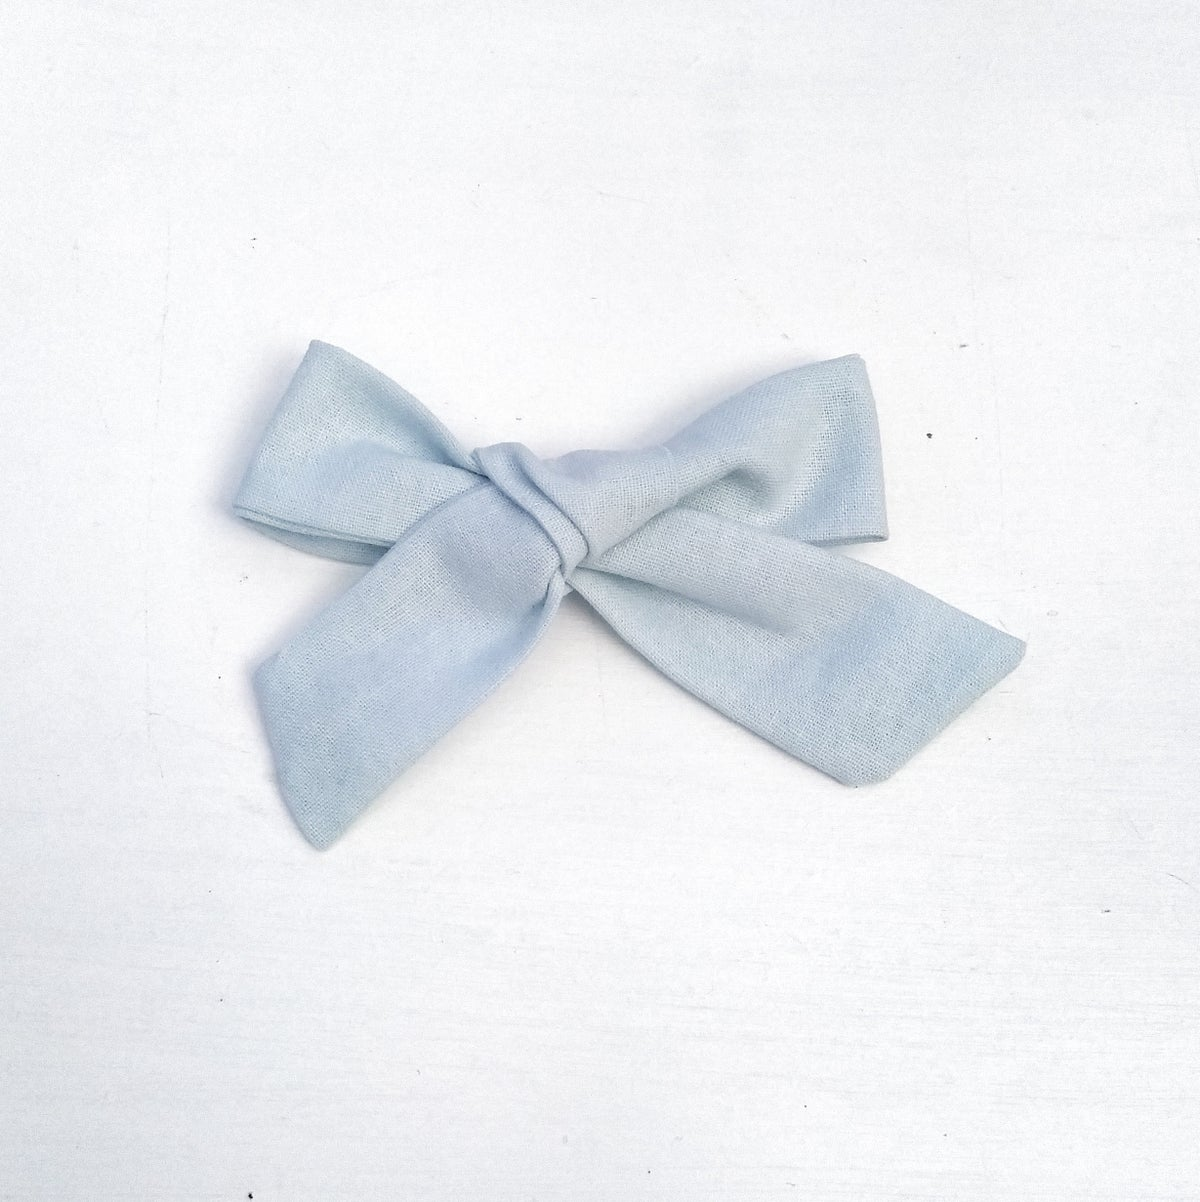 Image of Over Sized Hair Bow - Powder Blue Linen